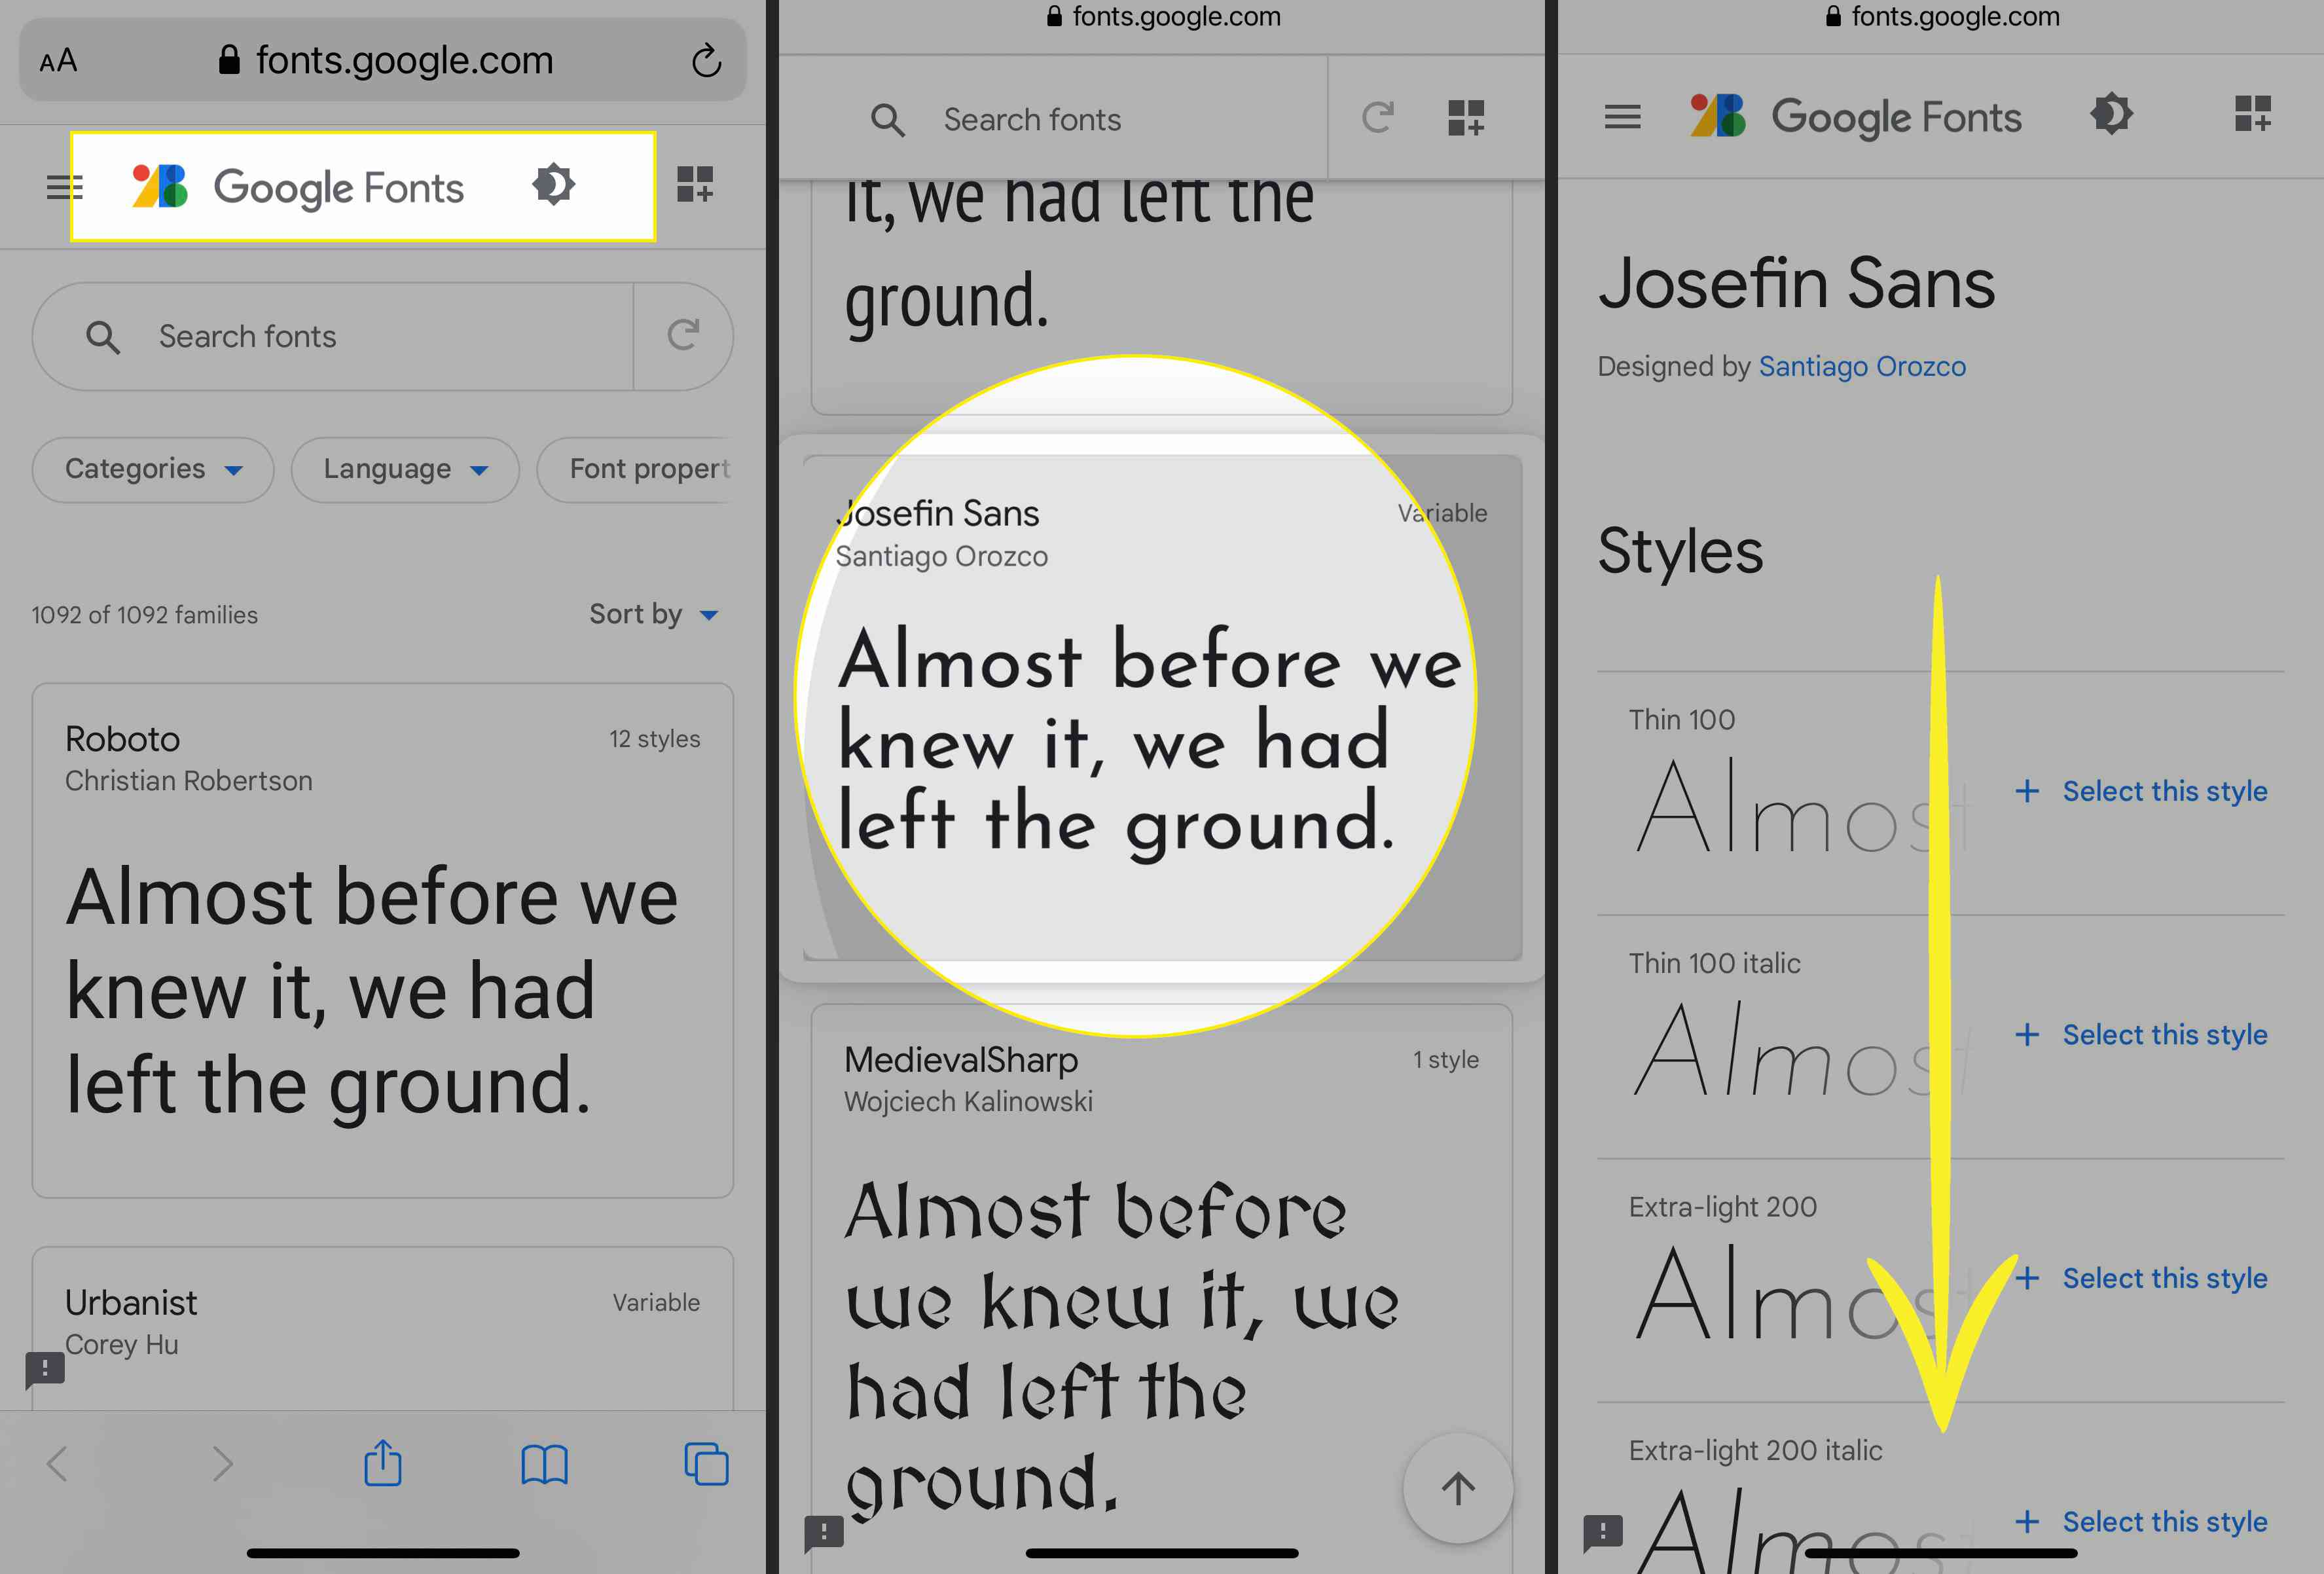 Google Fonts in Safari with Josefin Sans highlighted and font styles listed